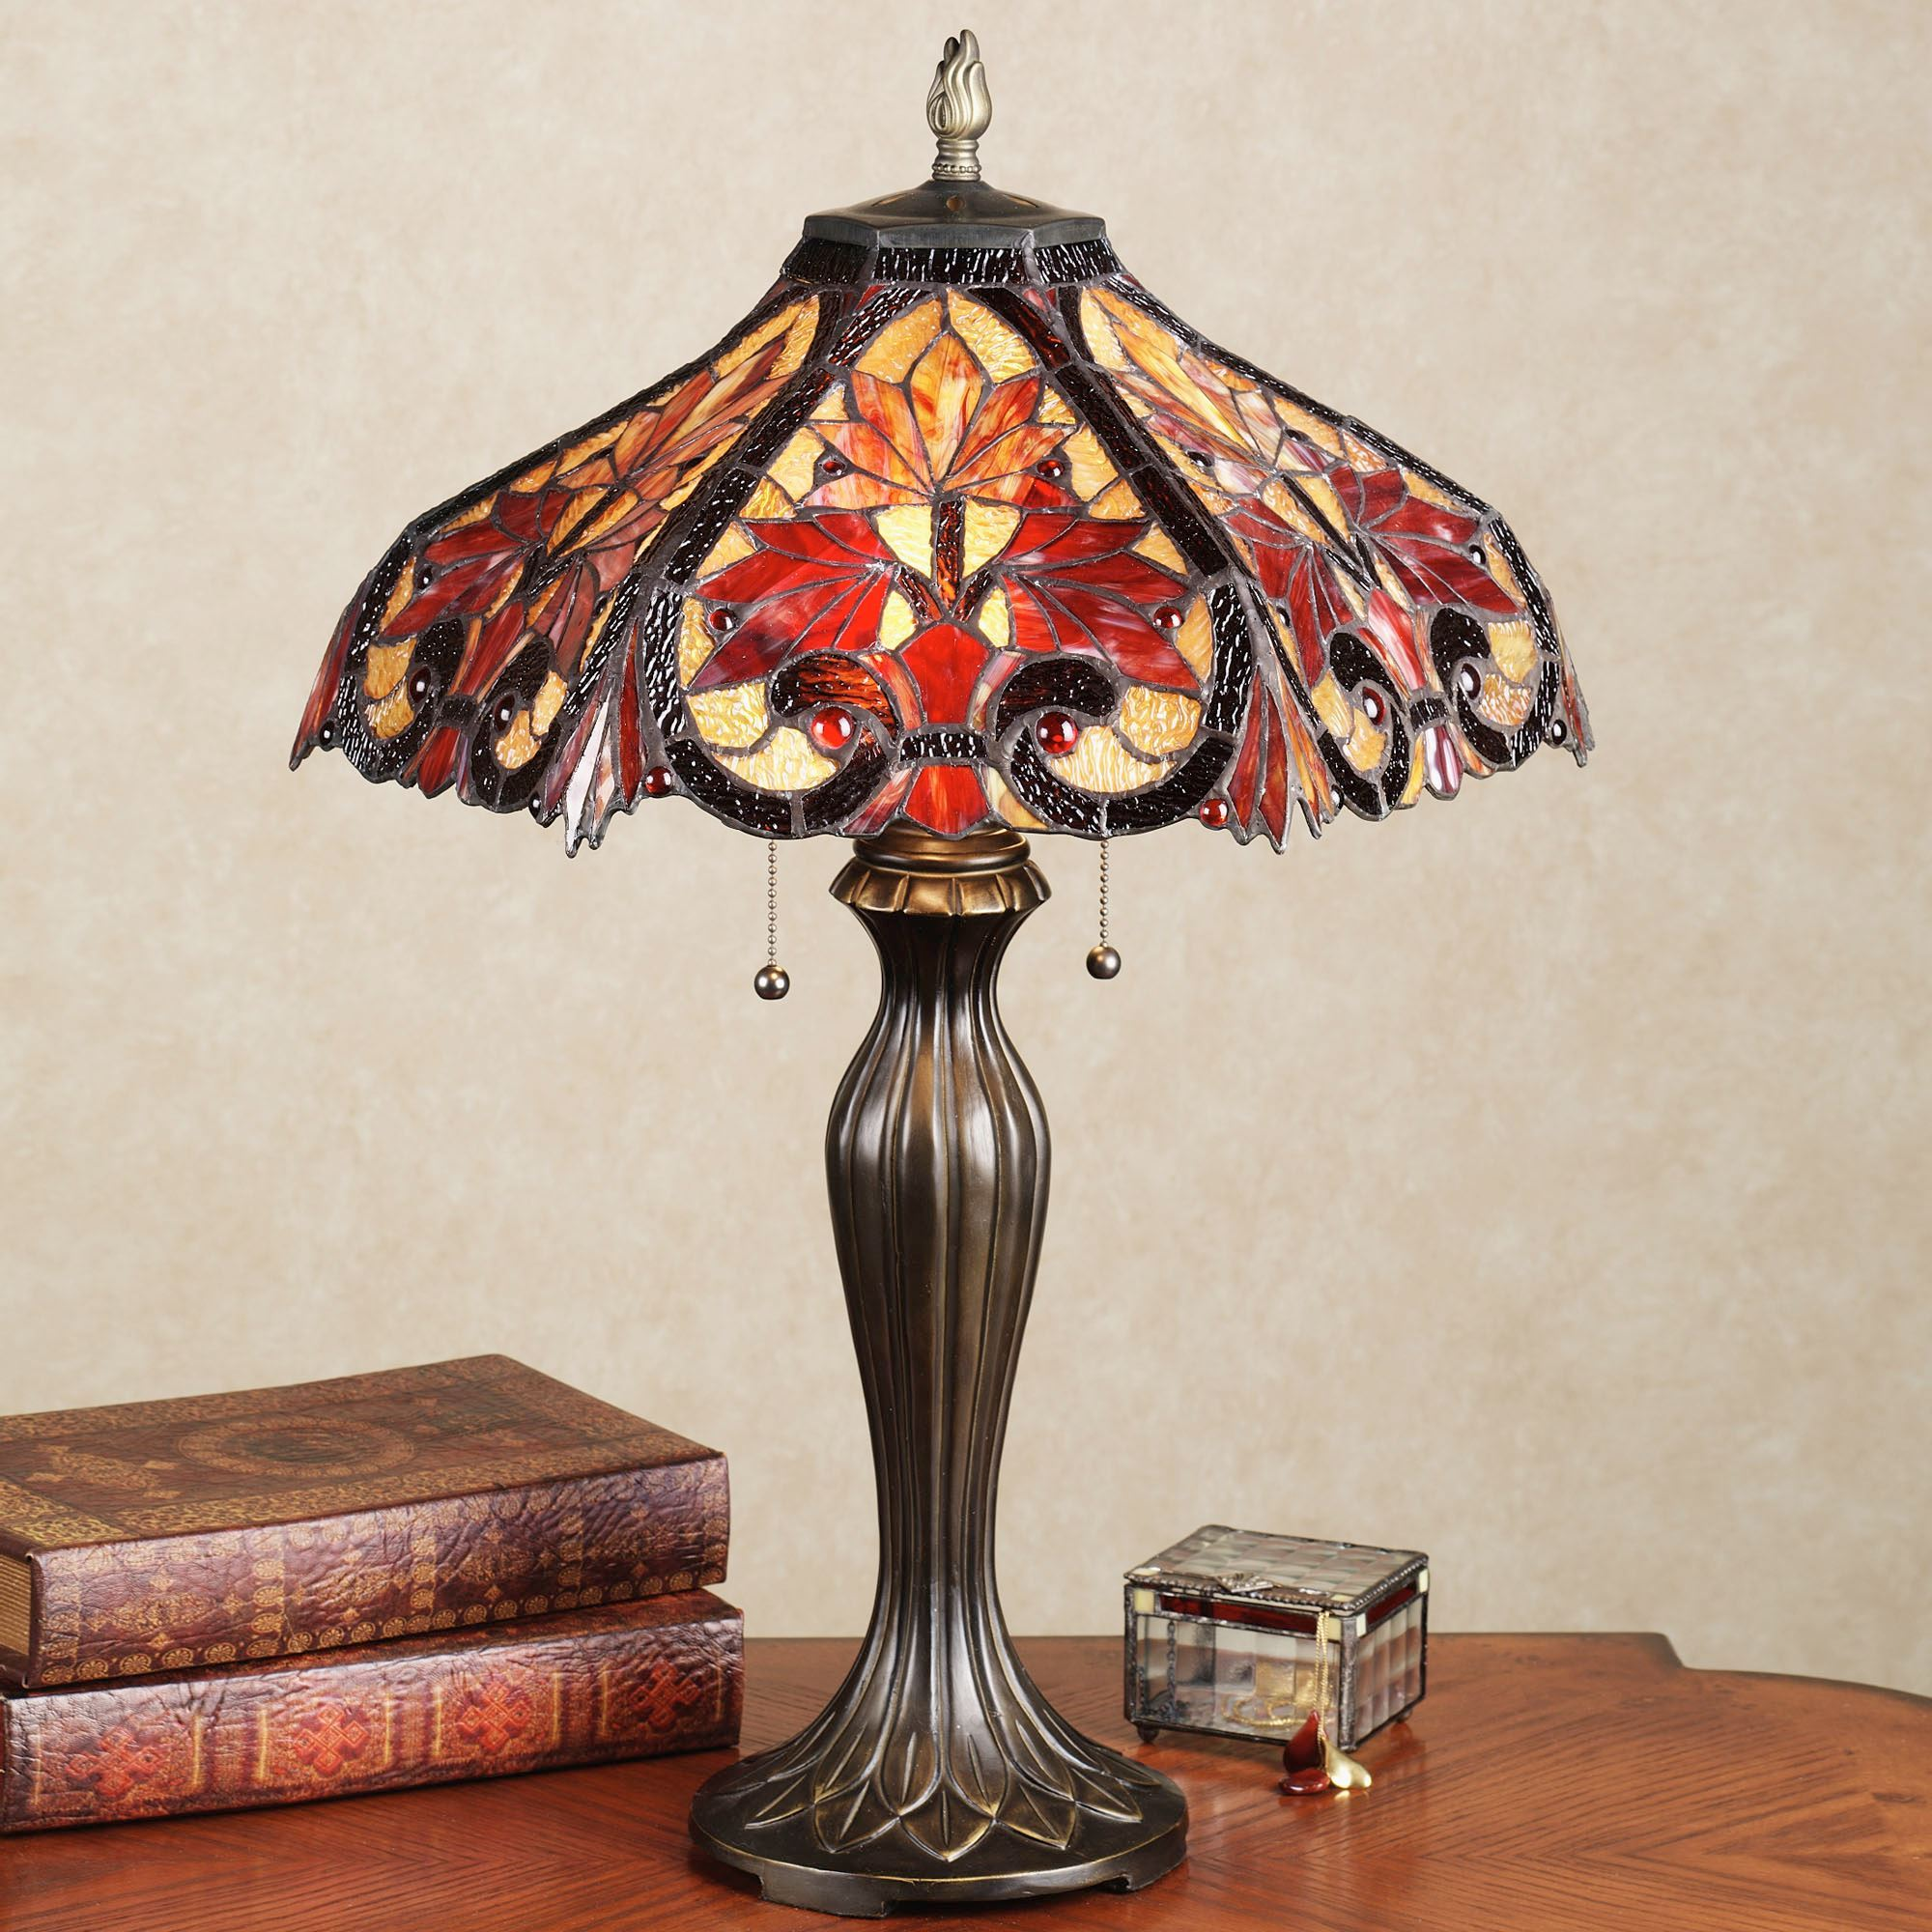 Whispering Foliage Stained Glass Table Lamp With LED Bulbs